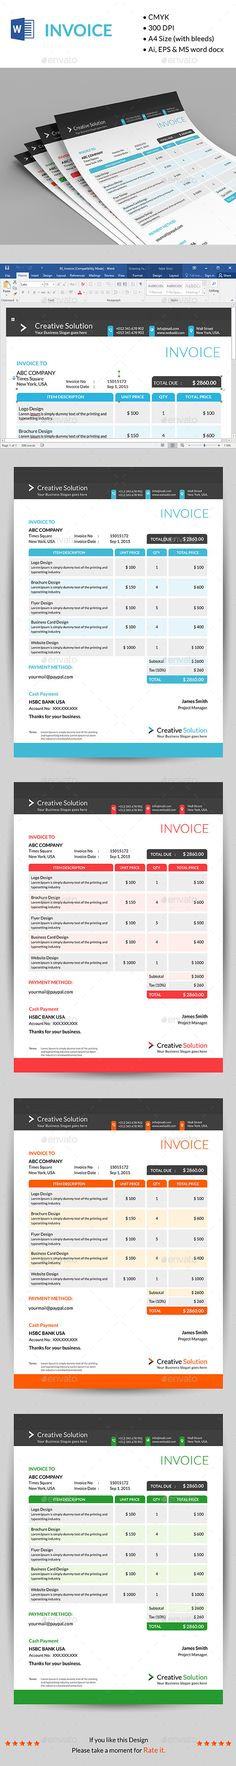 Invoice Moderna Include, Fonts and Cs - proposals templates